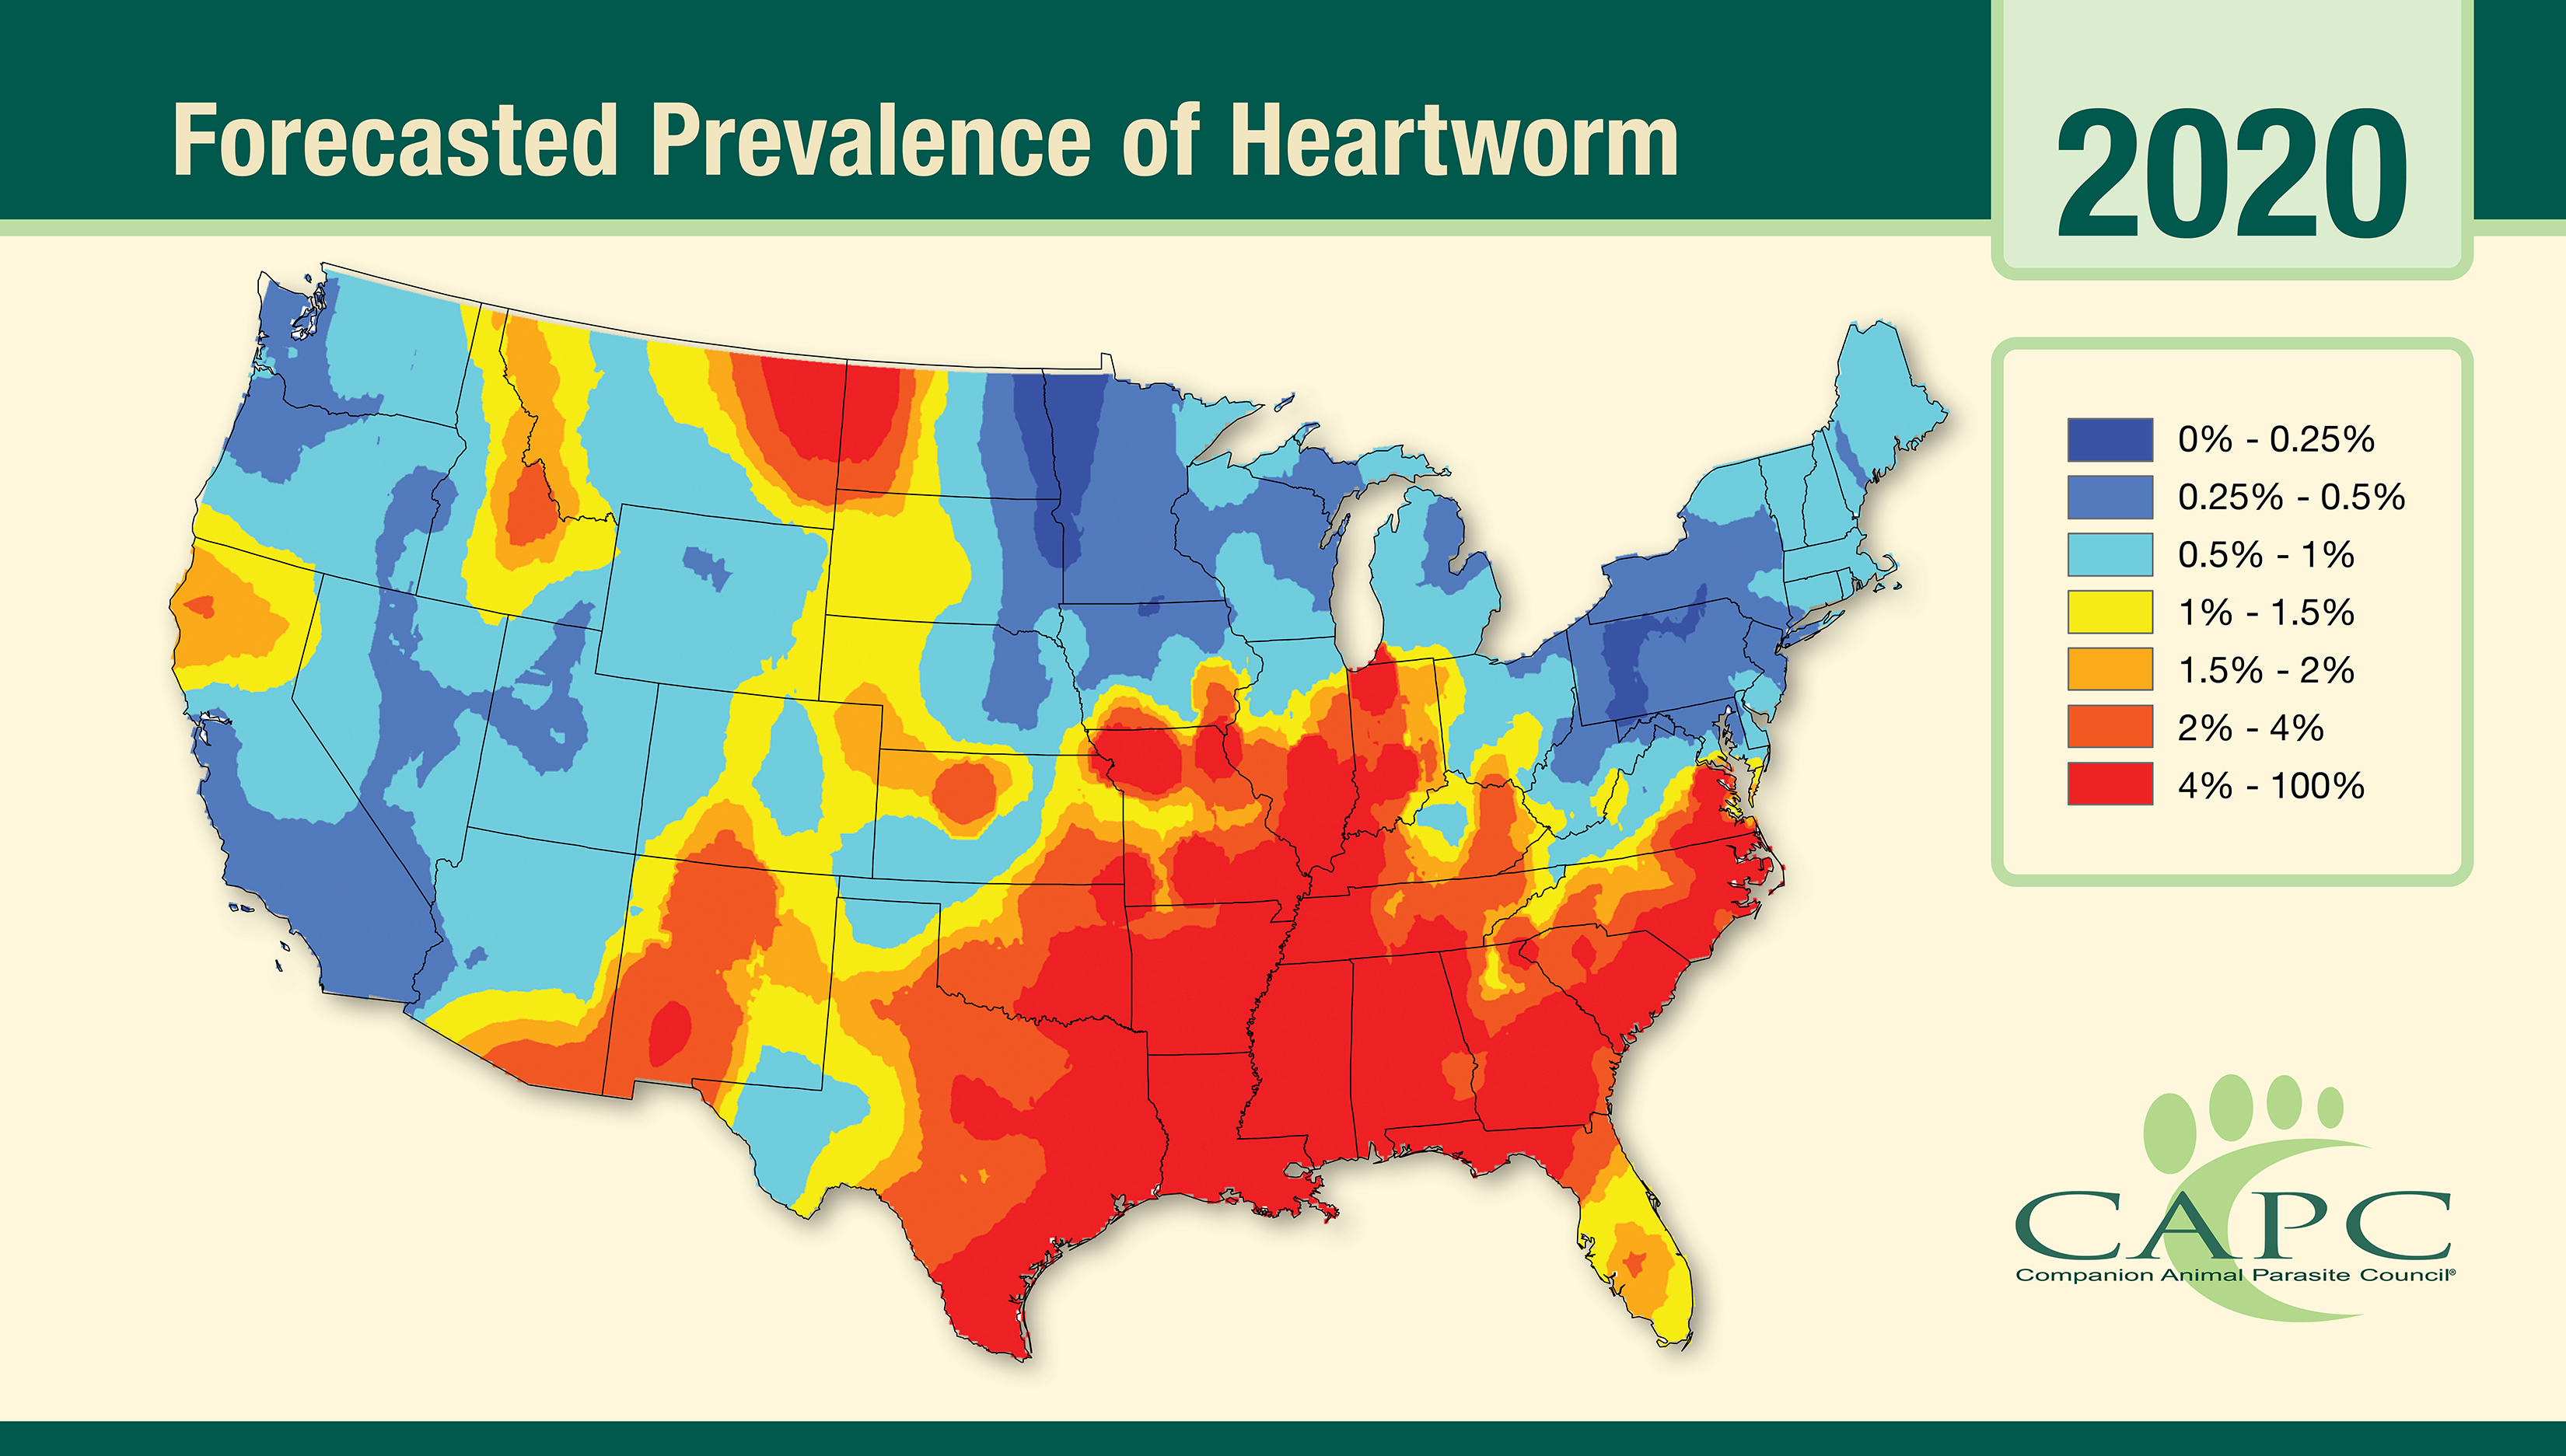 Companion Animal Parasite Council Annual Forecast Is Released -  Heartworm and Lyme Disease Are on the Rise